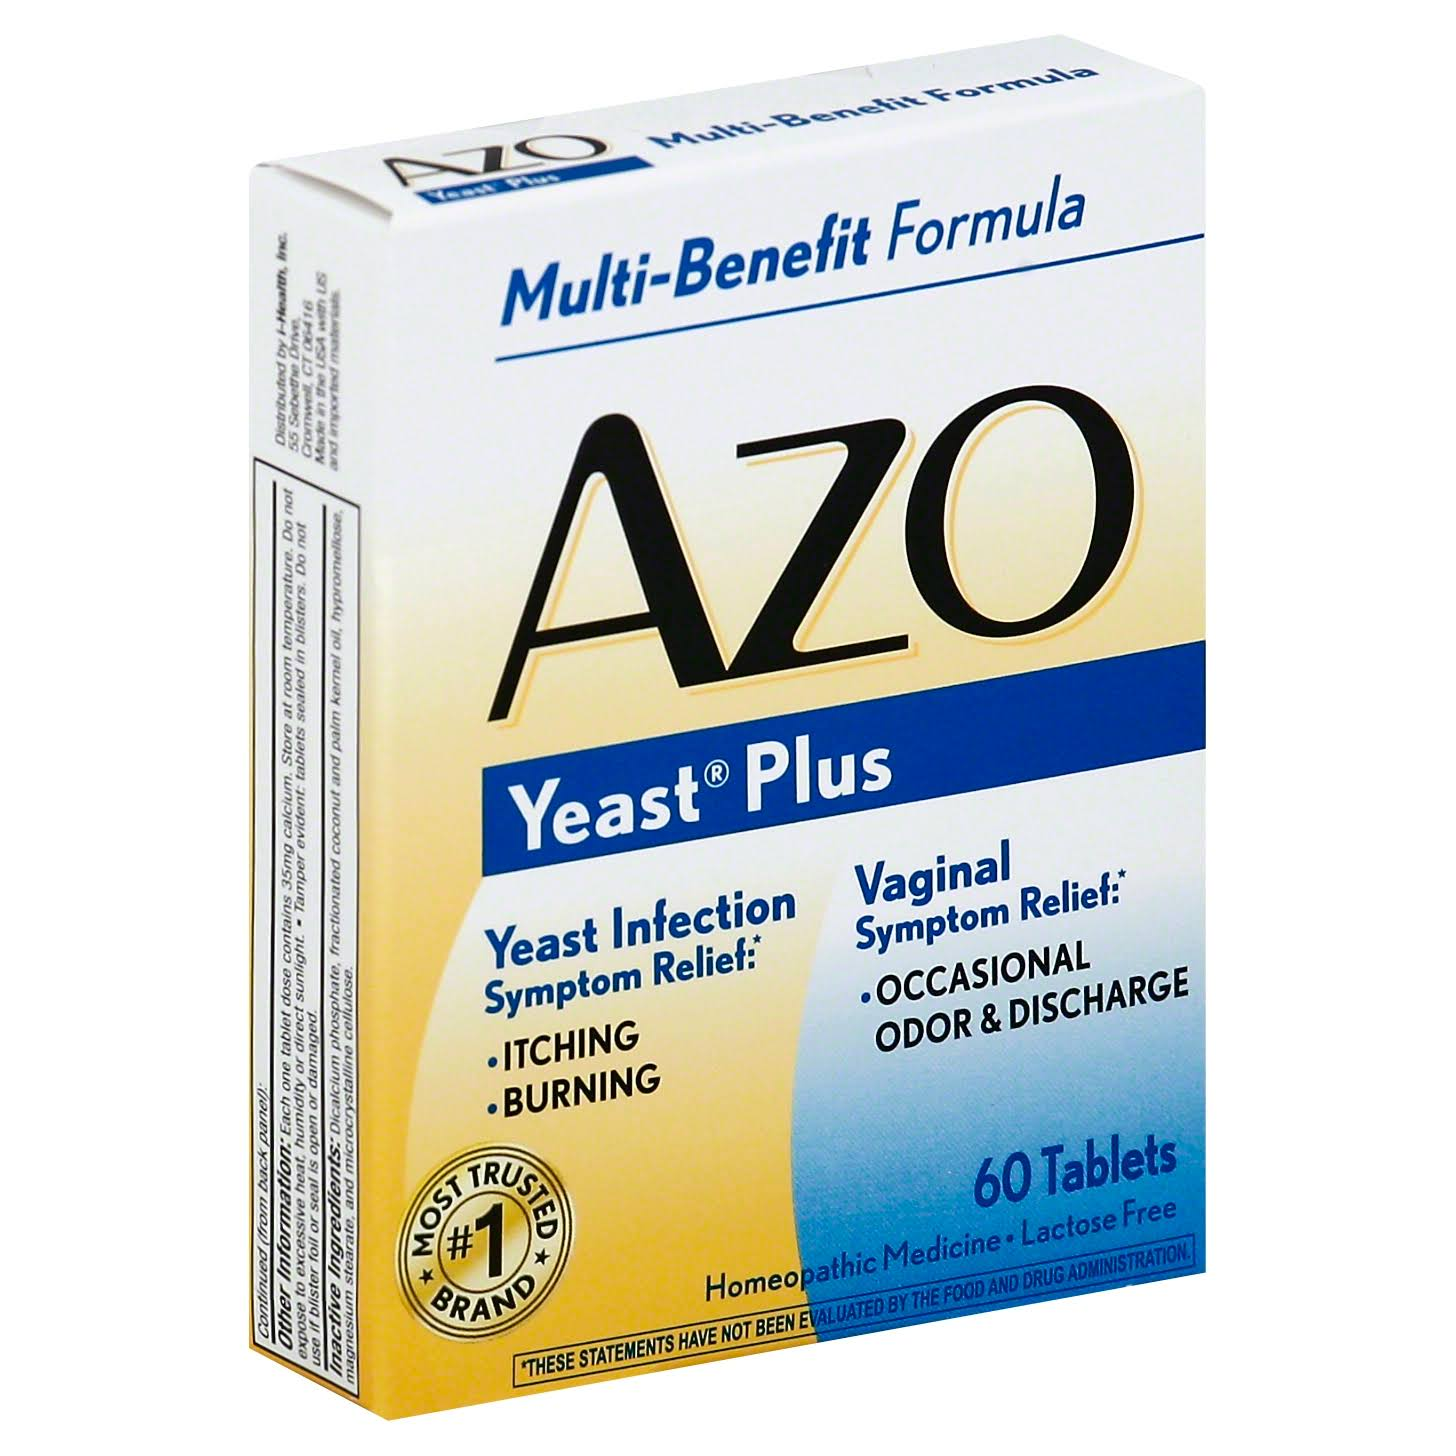 AZO Yeast Plus Multi-Benefit Formula Tablets - 60 Tablets